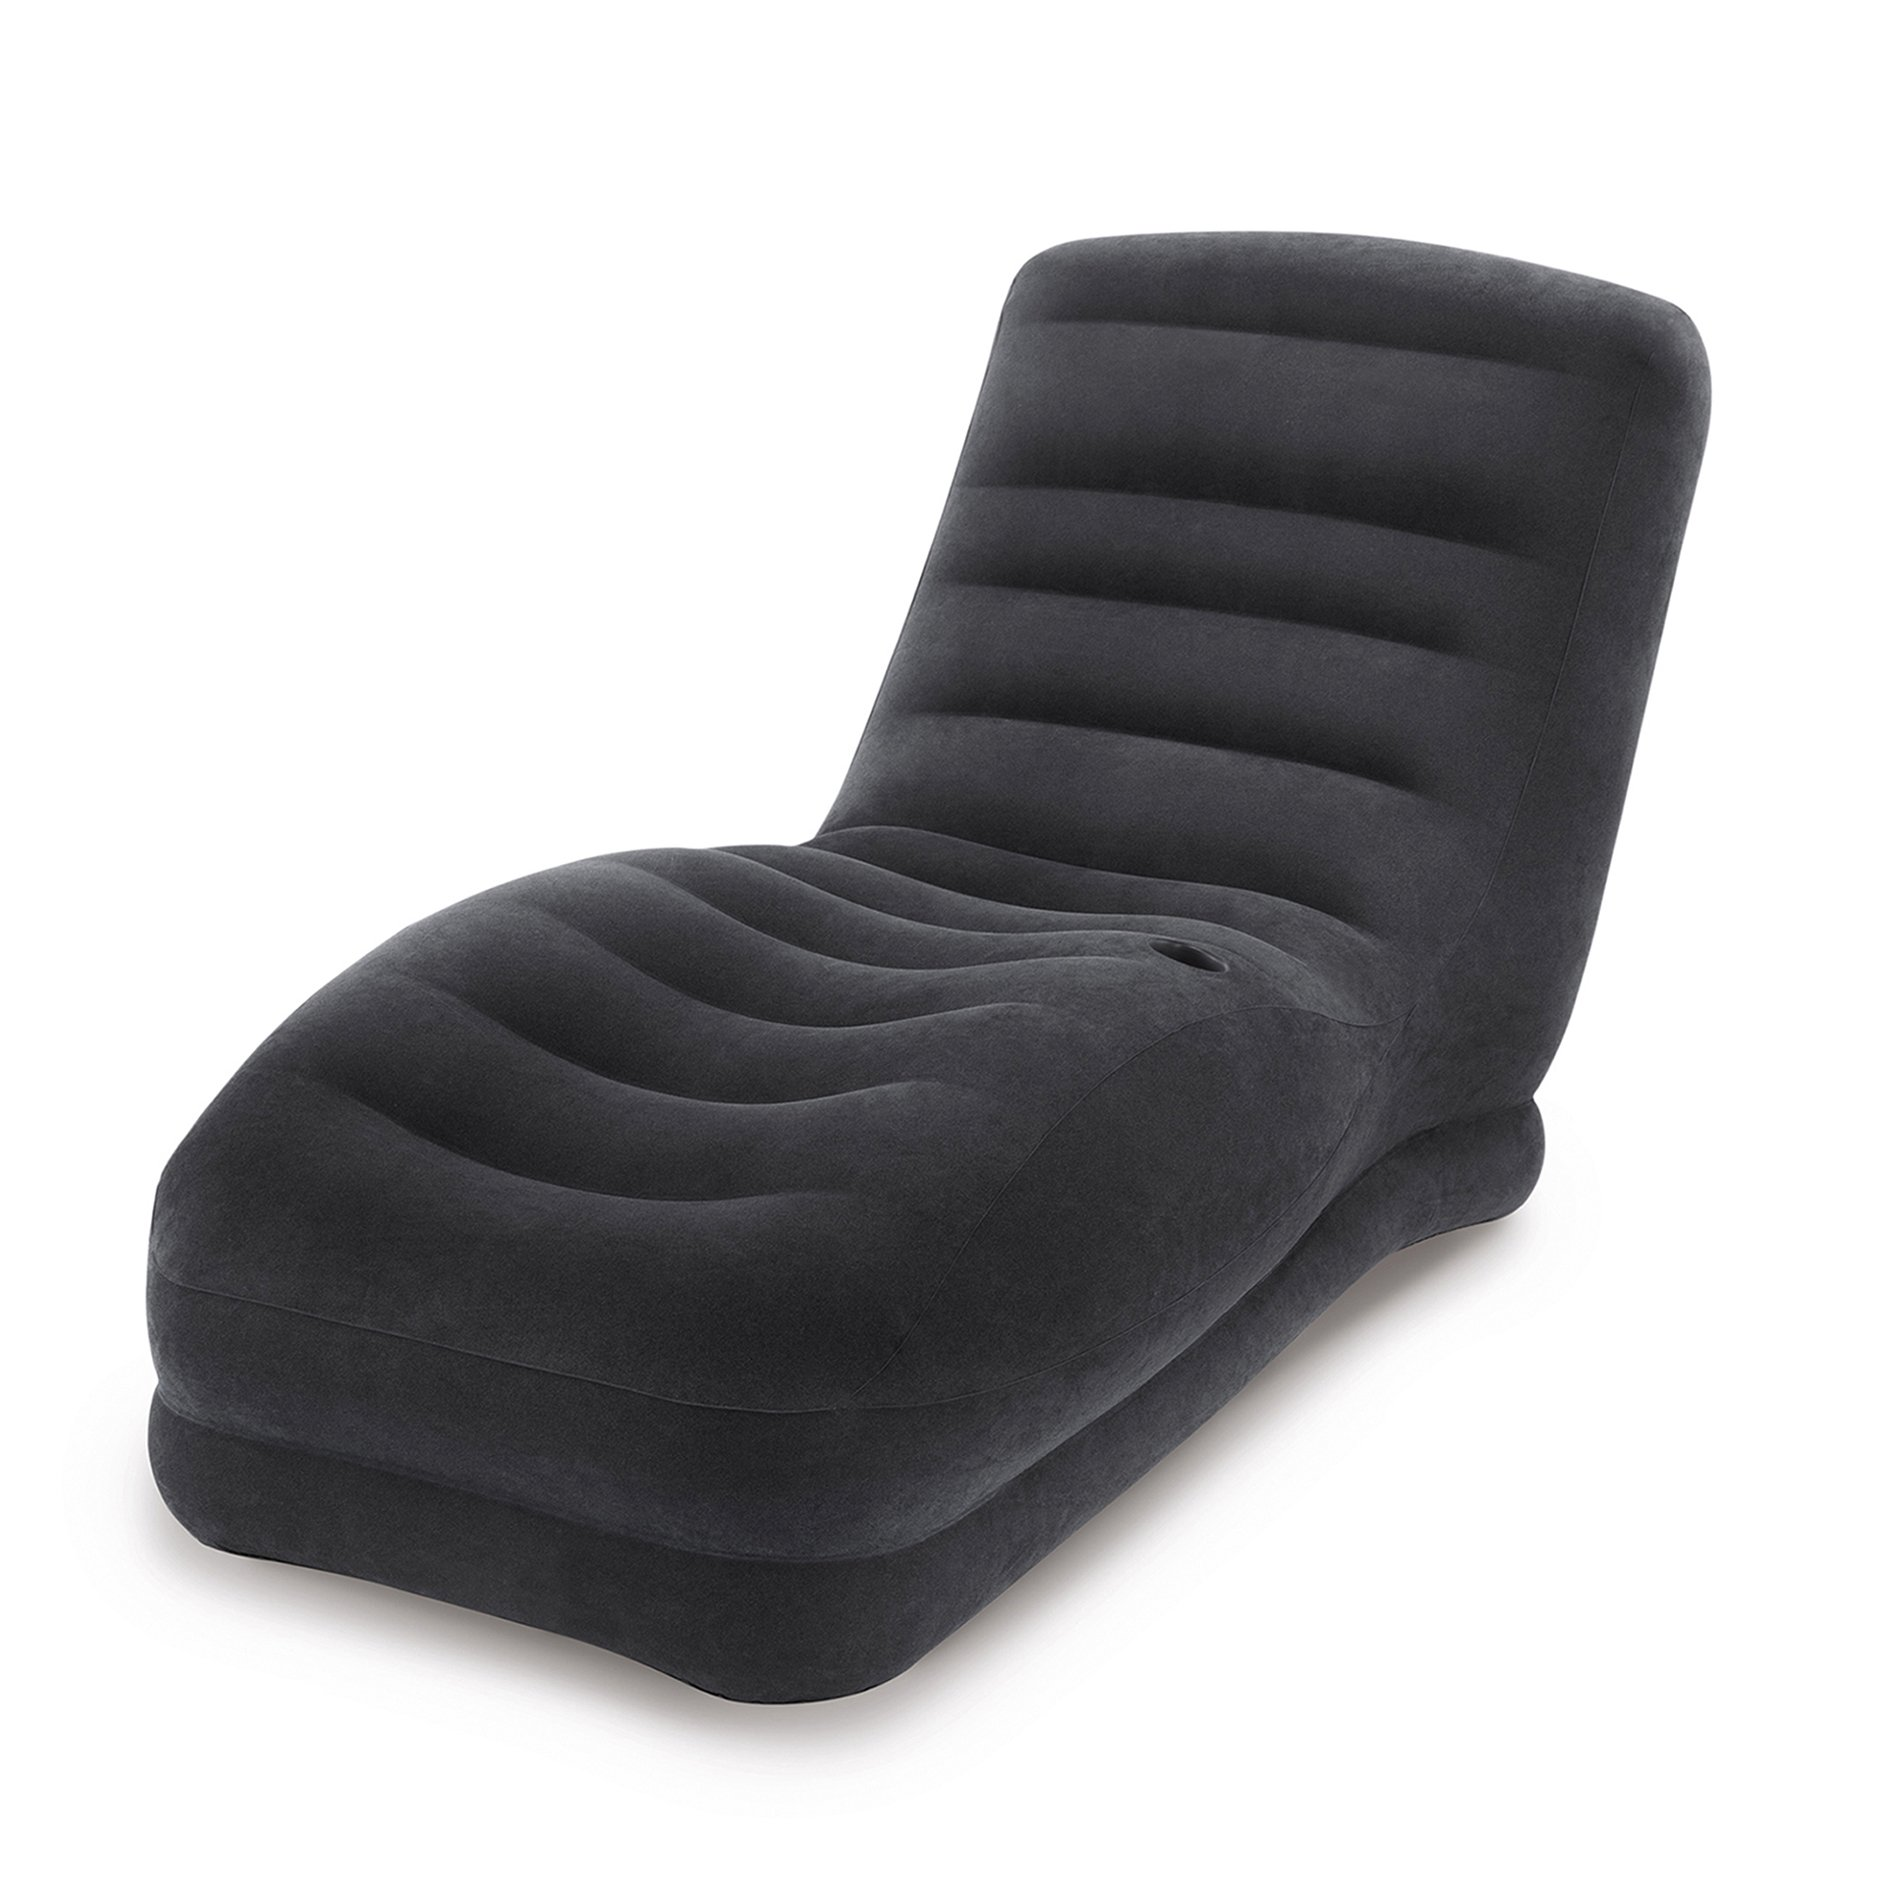 Get Quotations Intex Inflatable Contoured Mega Lounge Chair With Built In Cup Holder Black